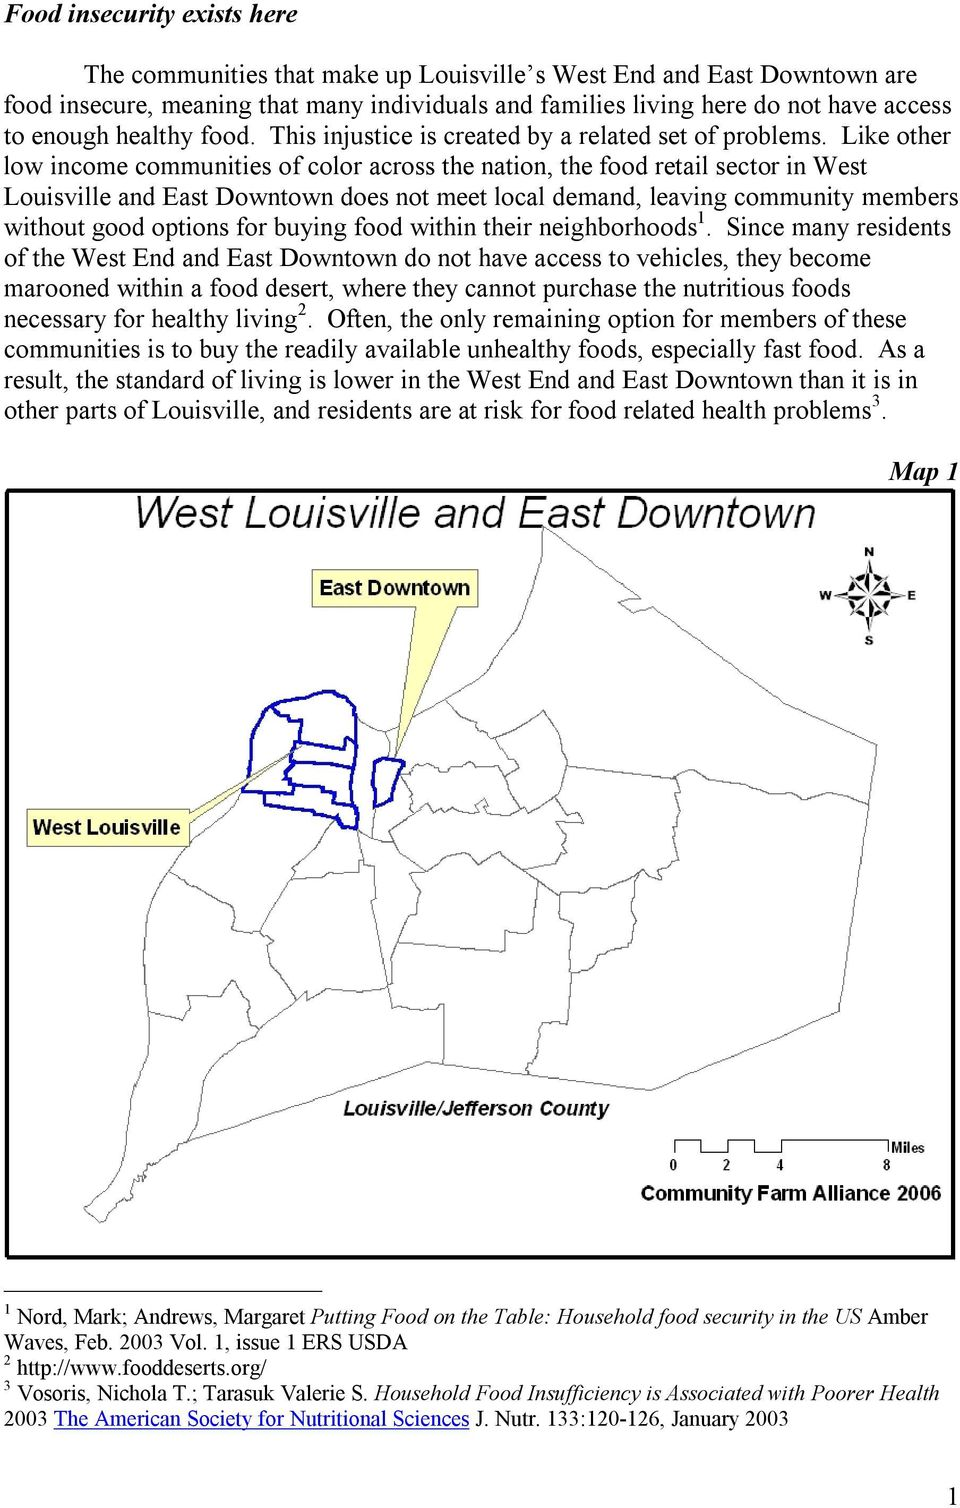 Like other low income communities of color across the nation, the food retail sector in West Louisville and East Downtown does not meet local demand, leaving community members without good options